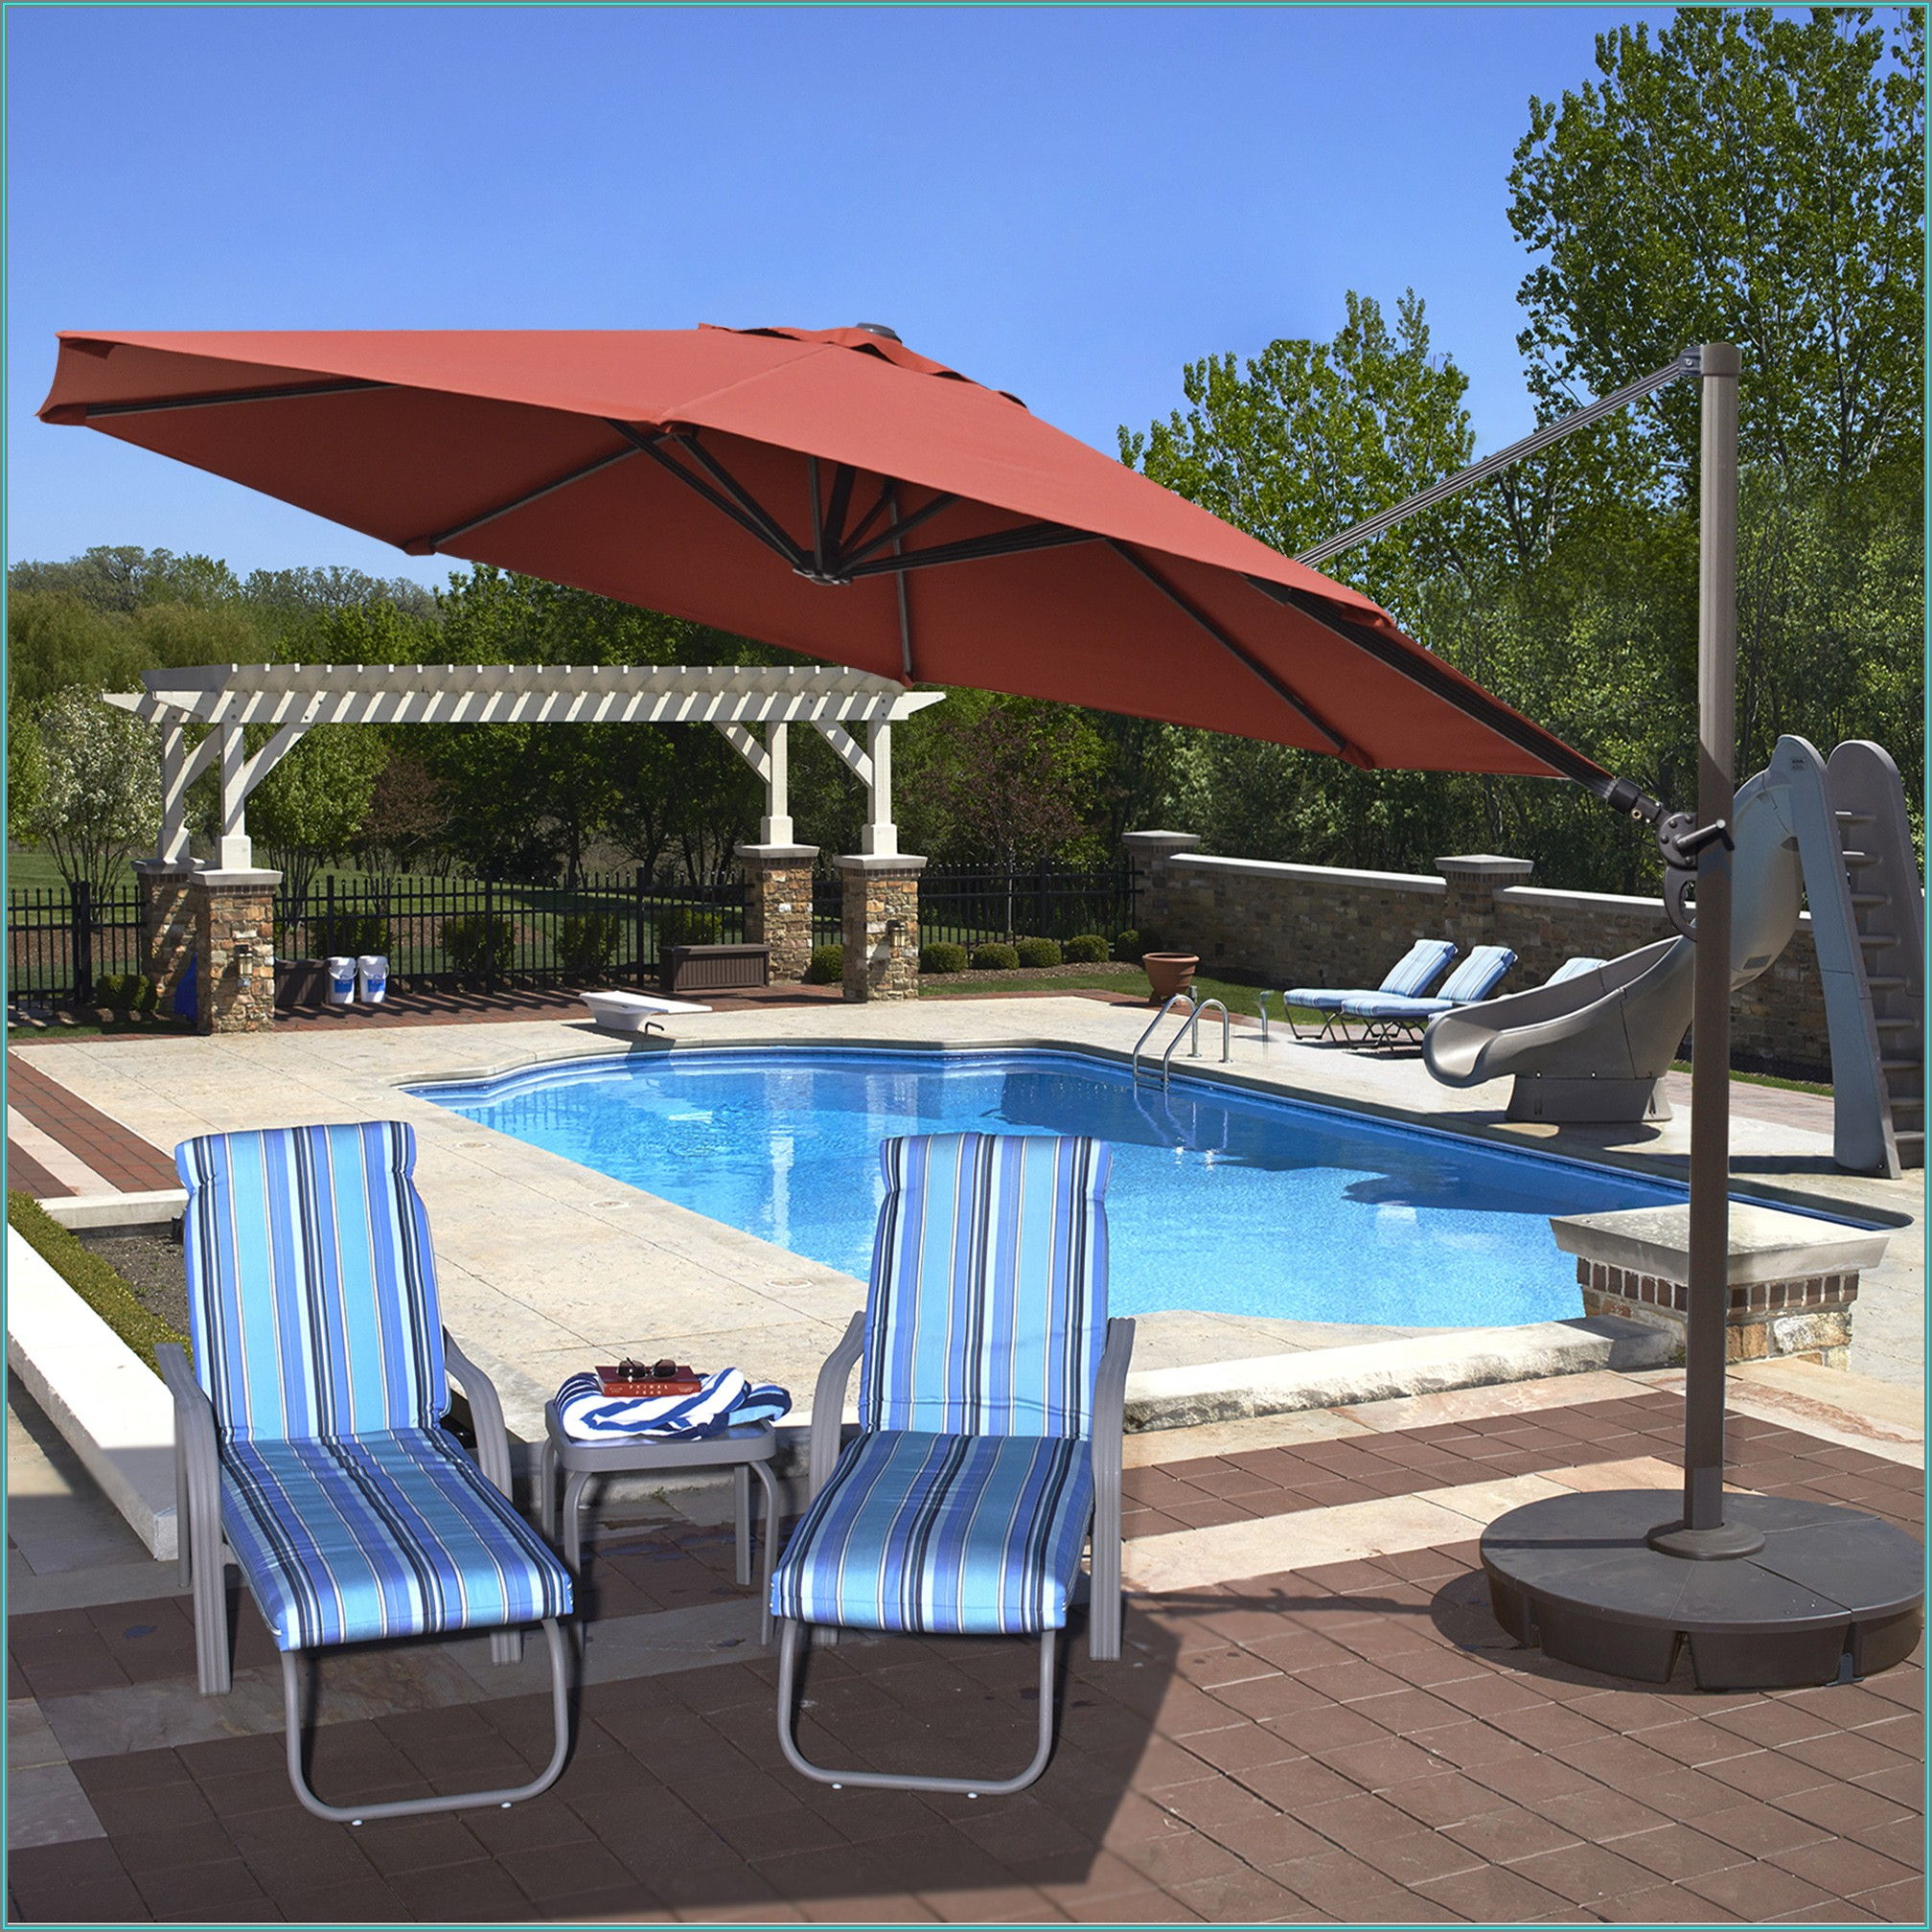 13 Cantilever Patio Umbrella